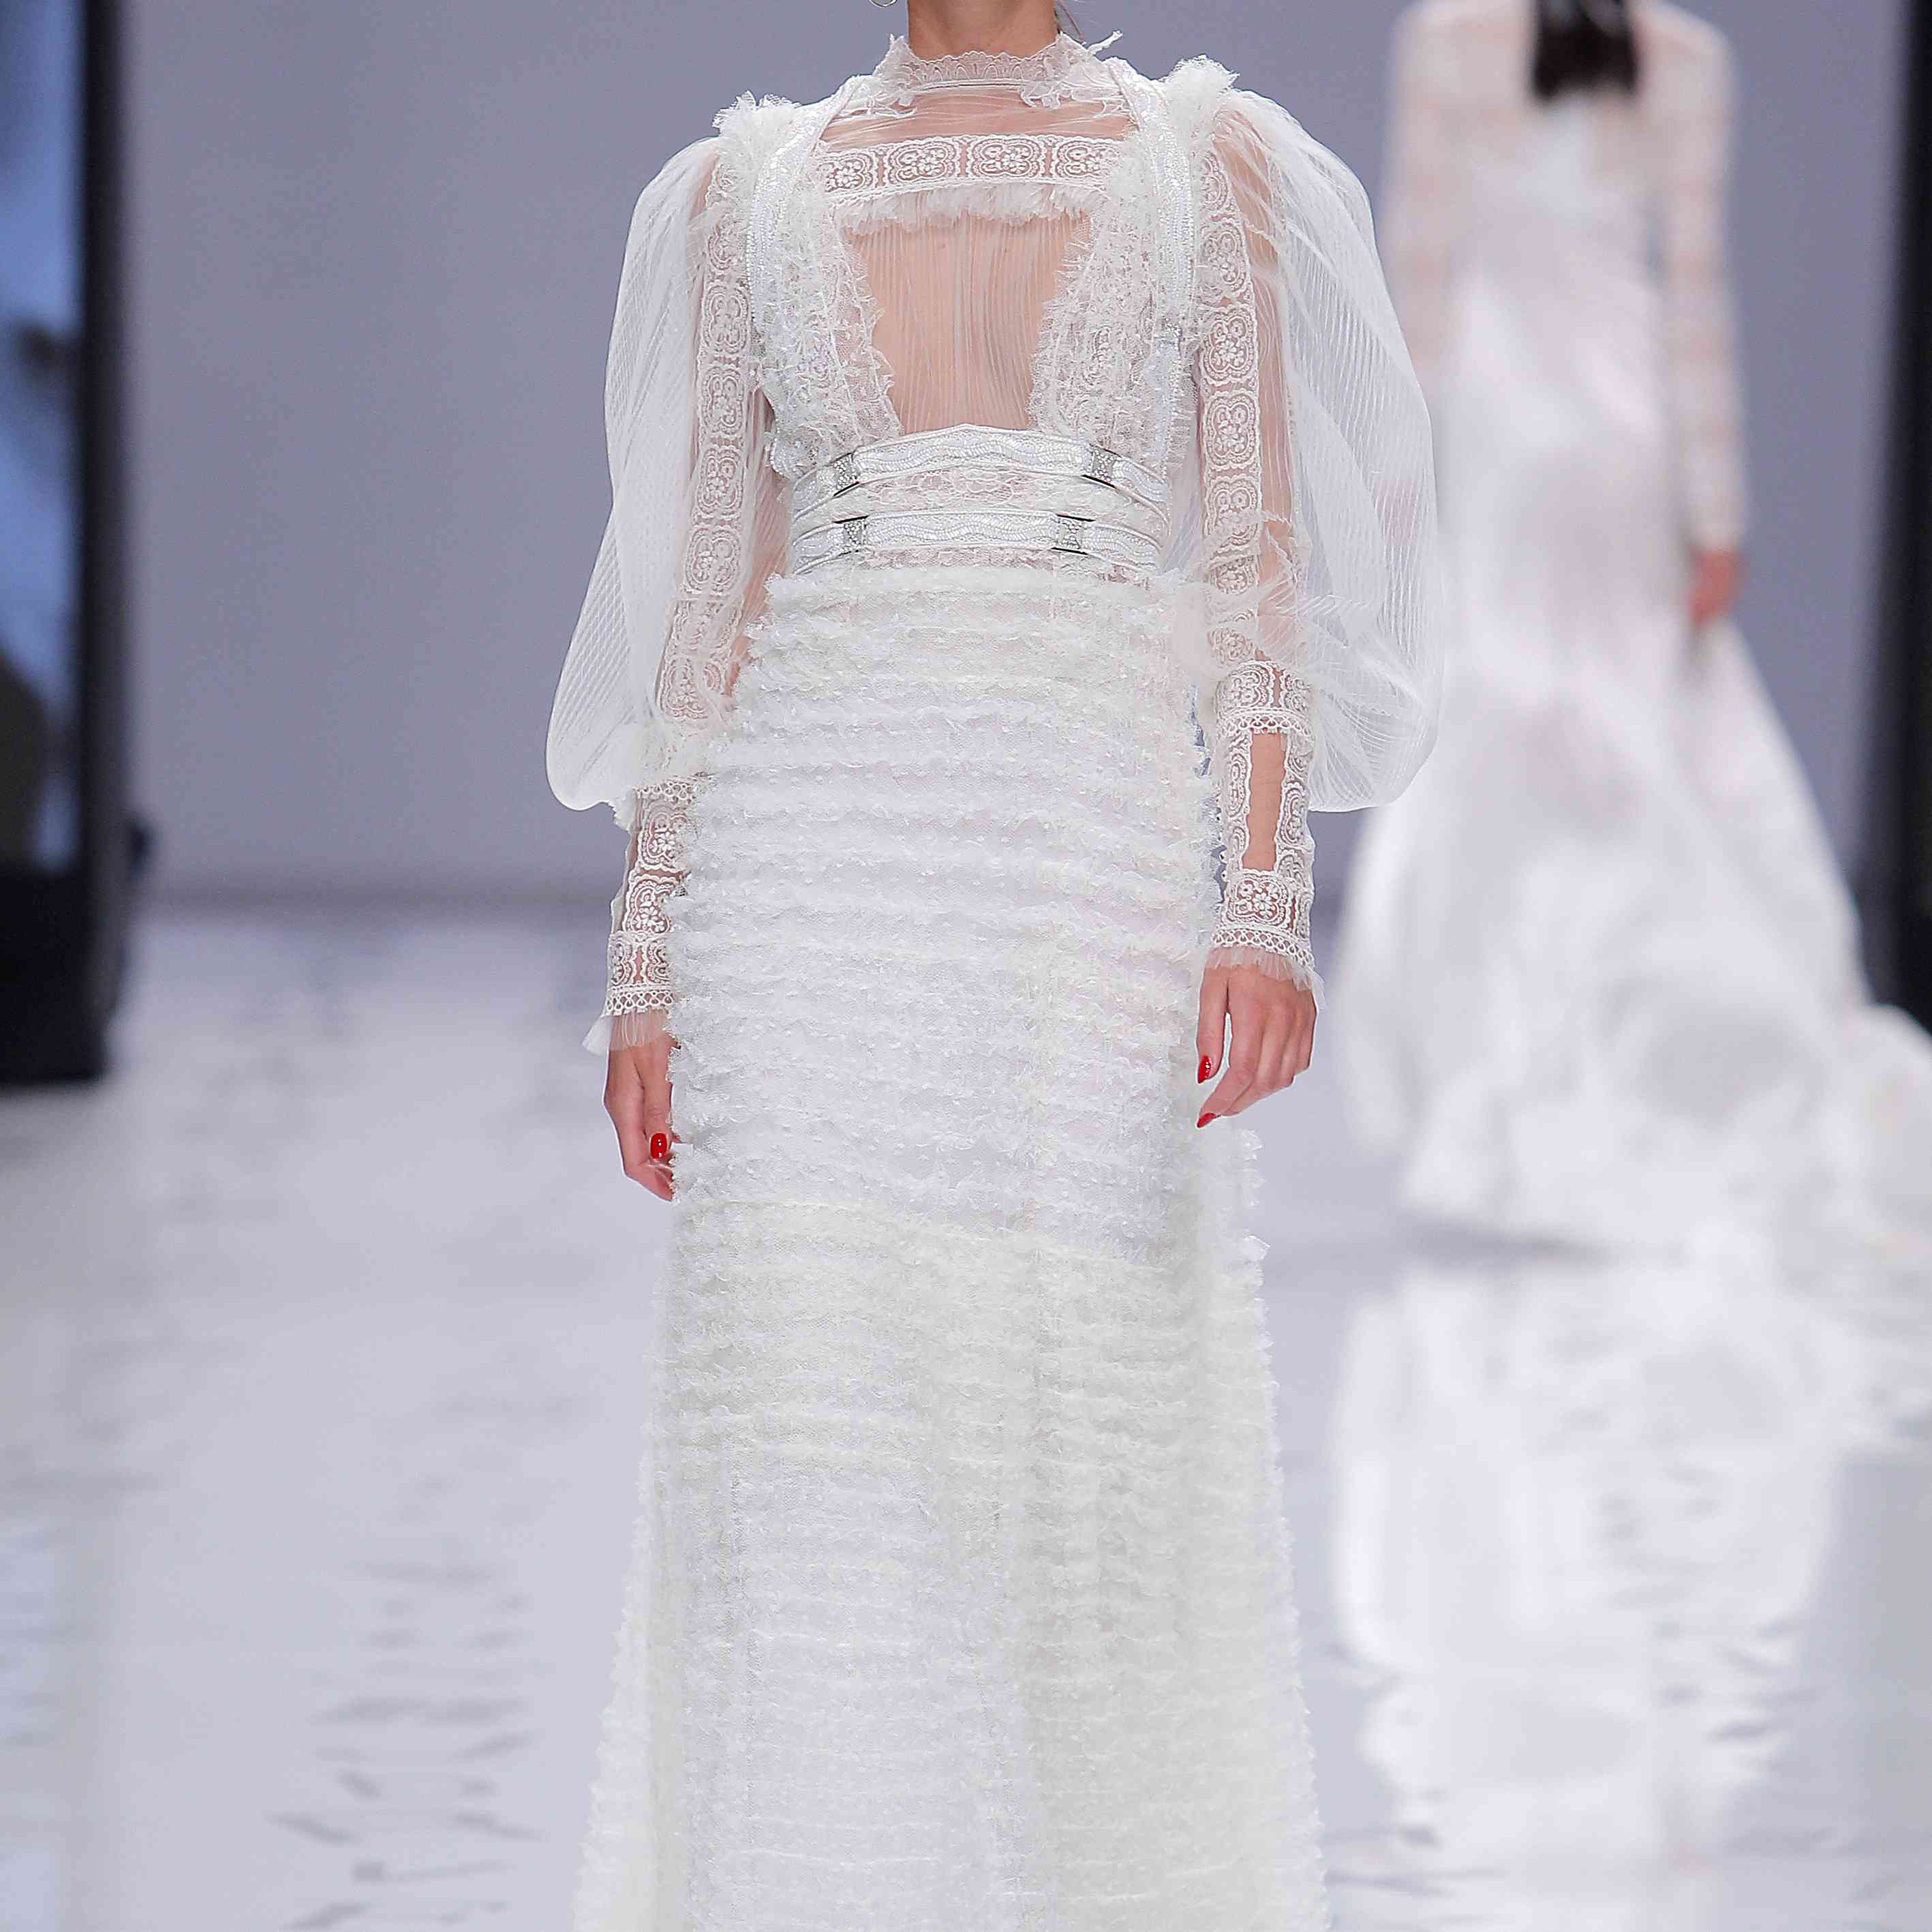 Model in high-neck lace and tulle sheath dress with long puff sleeves, a ruffled skirt, and a beaded double waistband